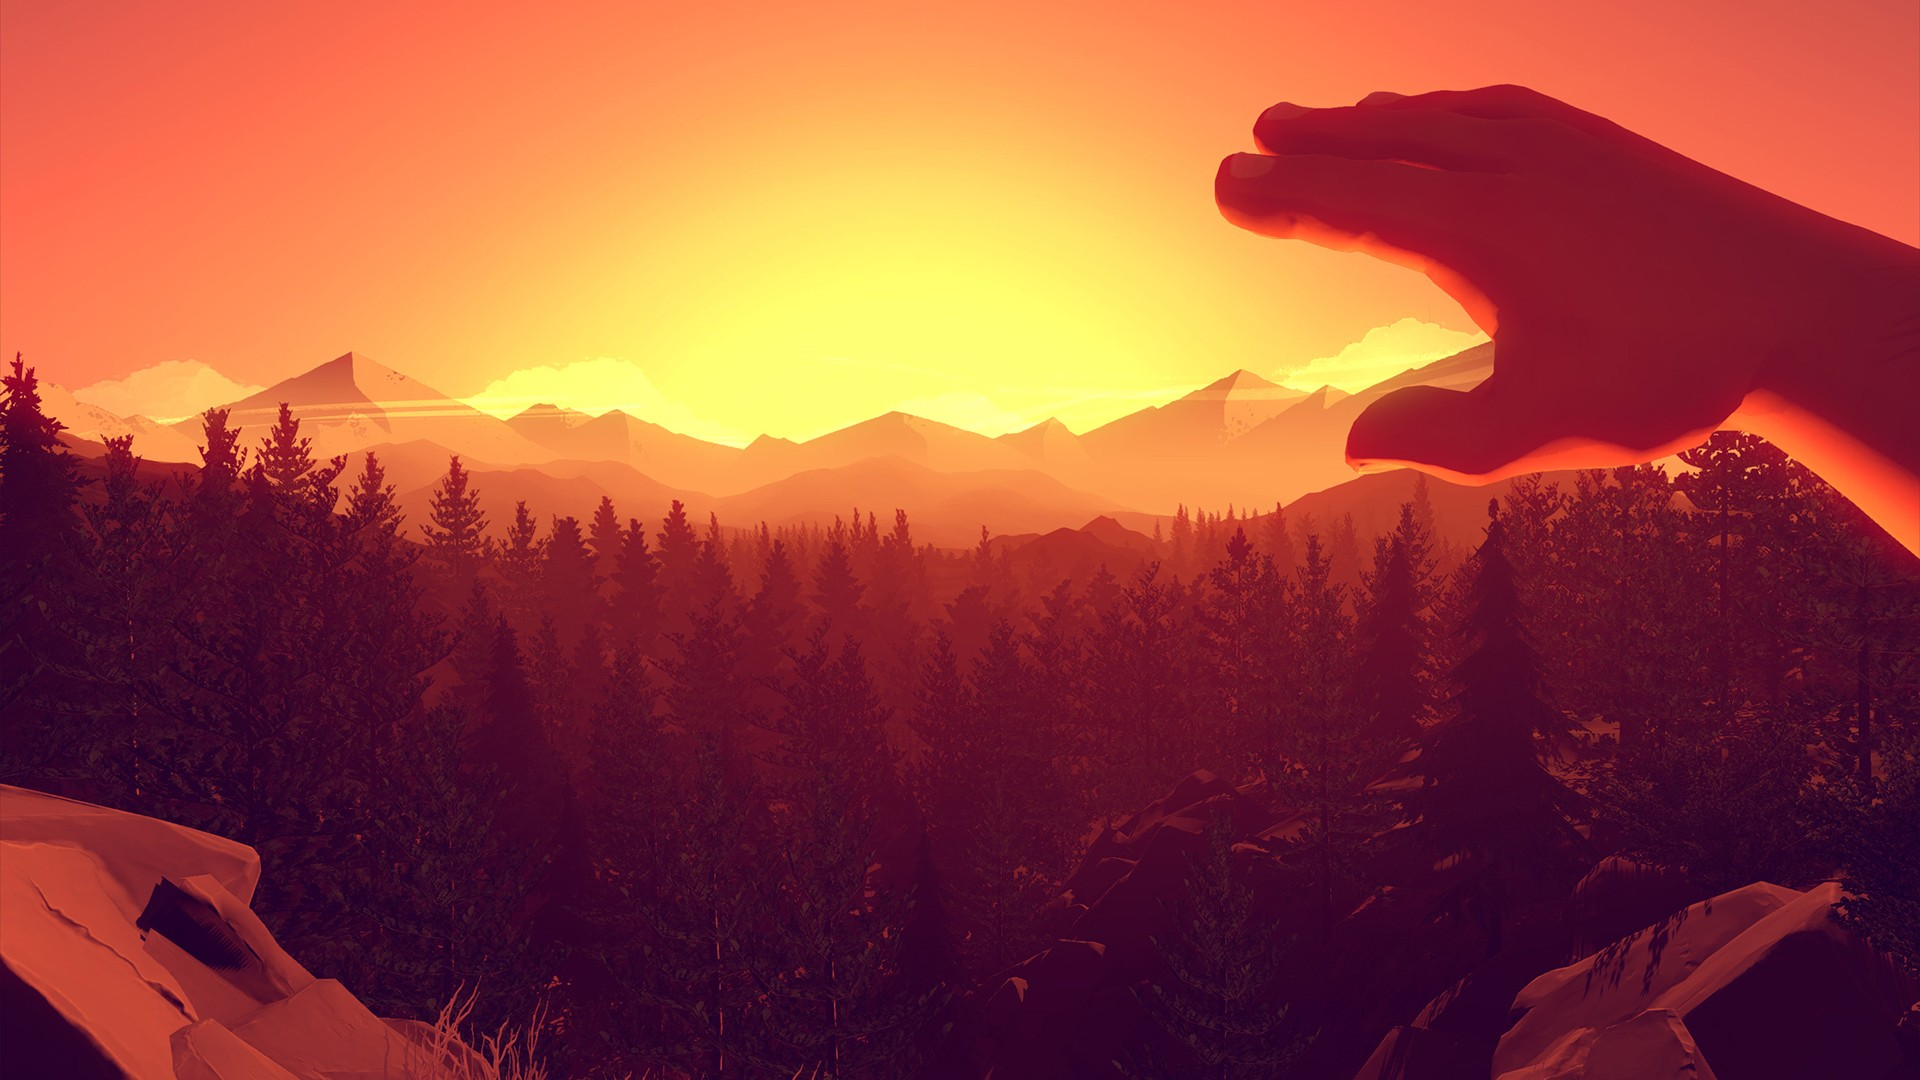 firewatch video games, hd games, 4k wallpapers, images, backgrounds